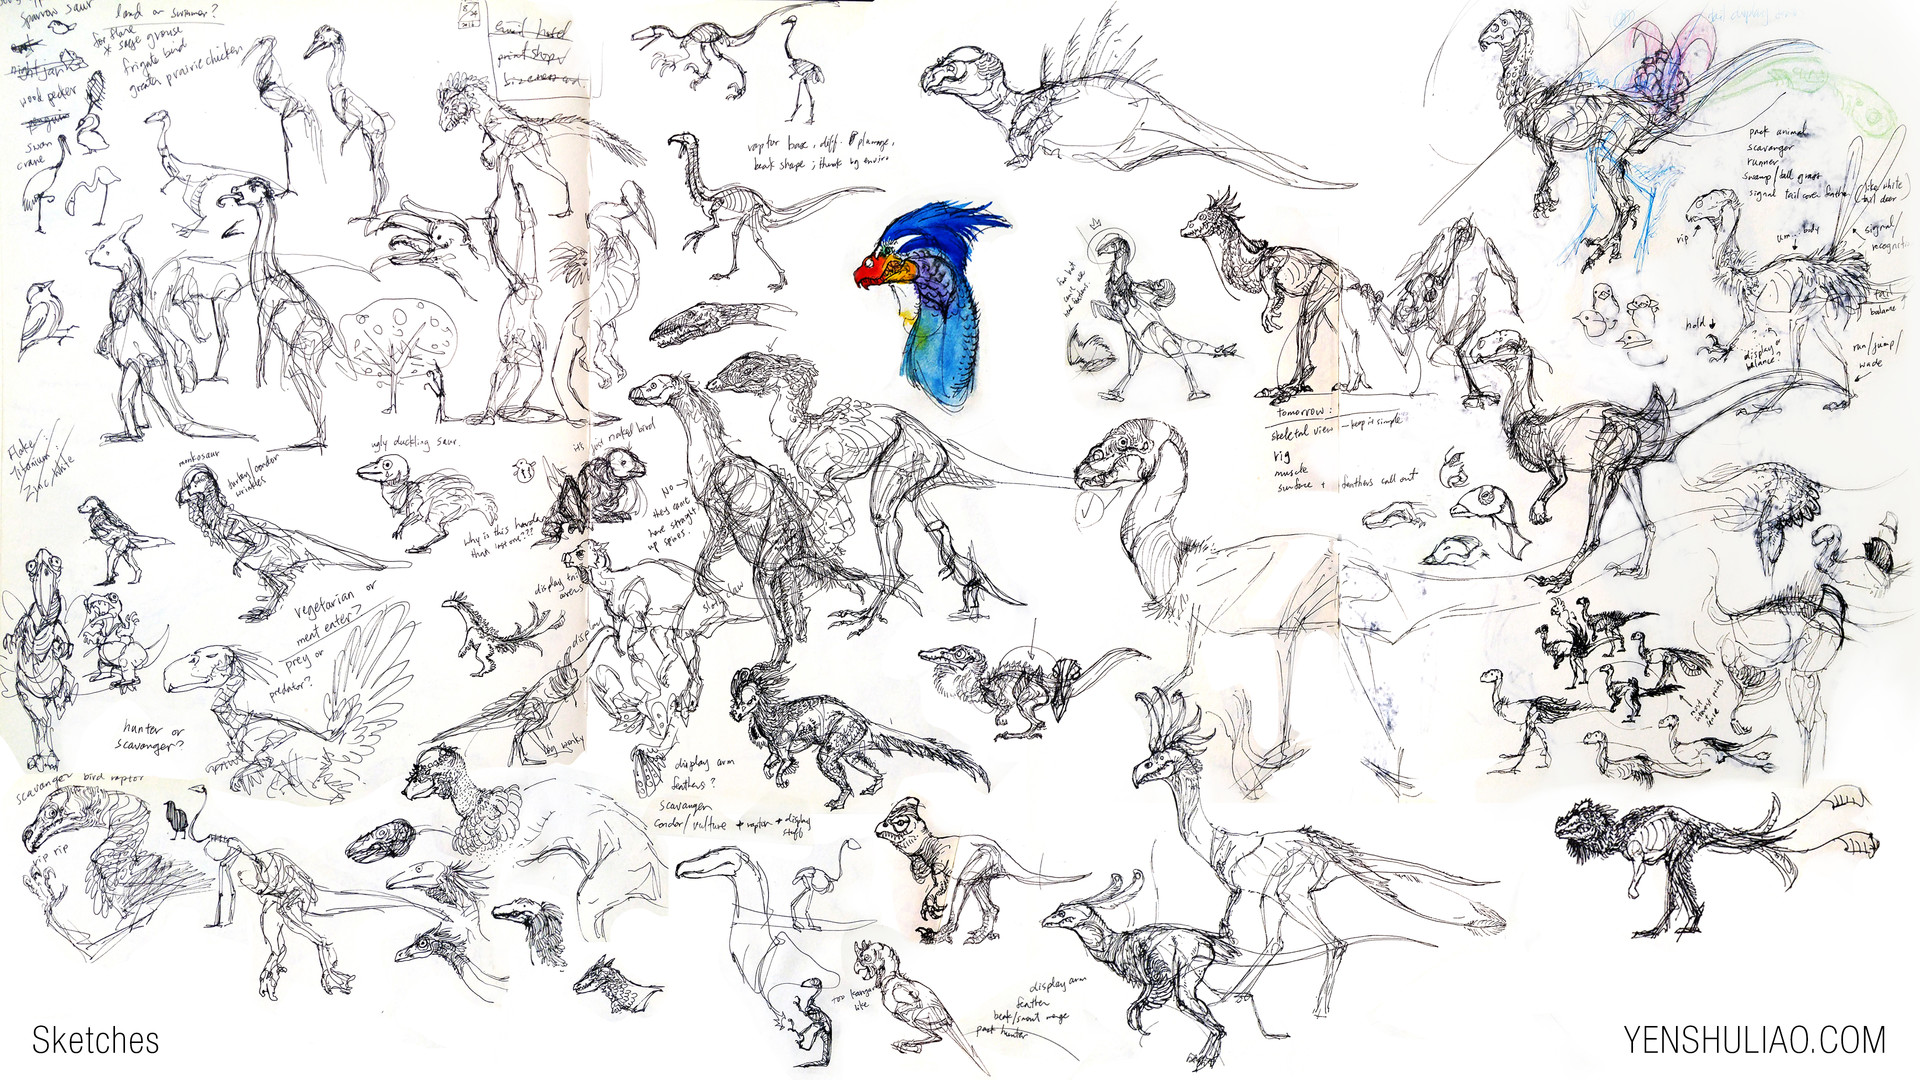 Yen shu liao creature concept sketches raptor bird